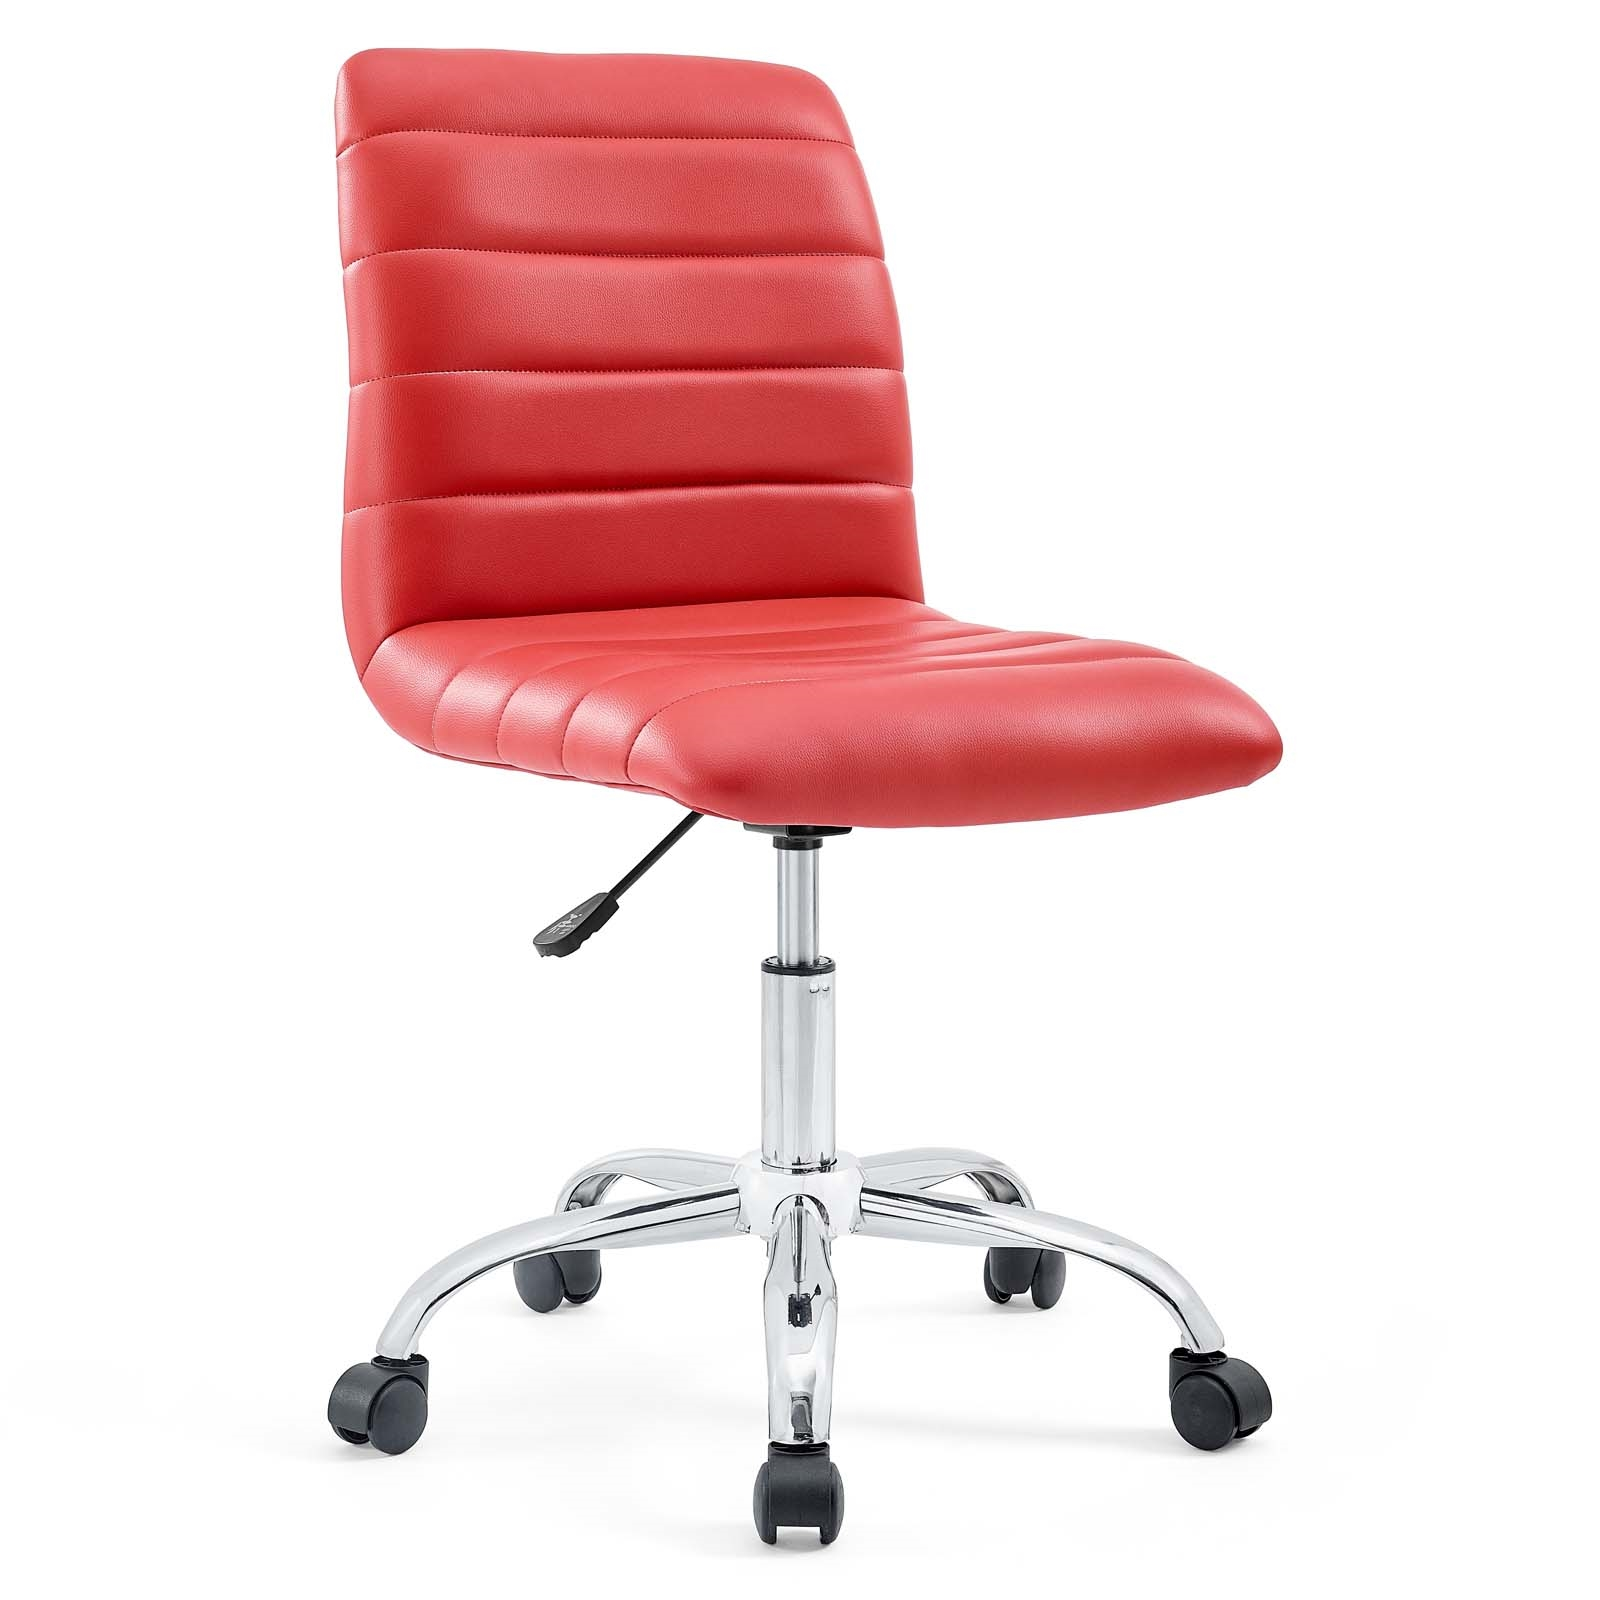 Armless Mid Back Vinyl Office Chair in Red